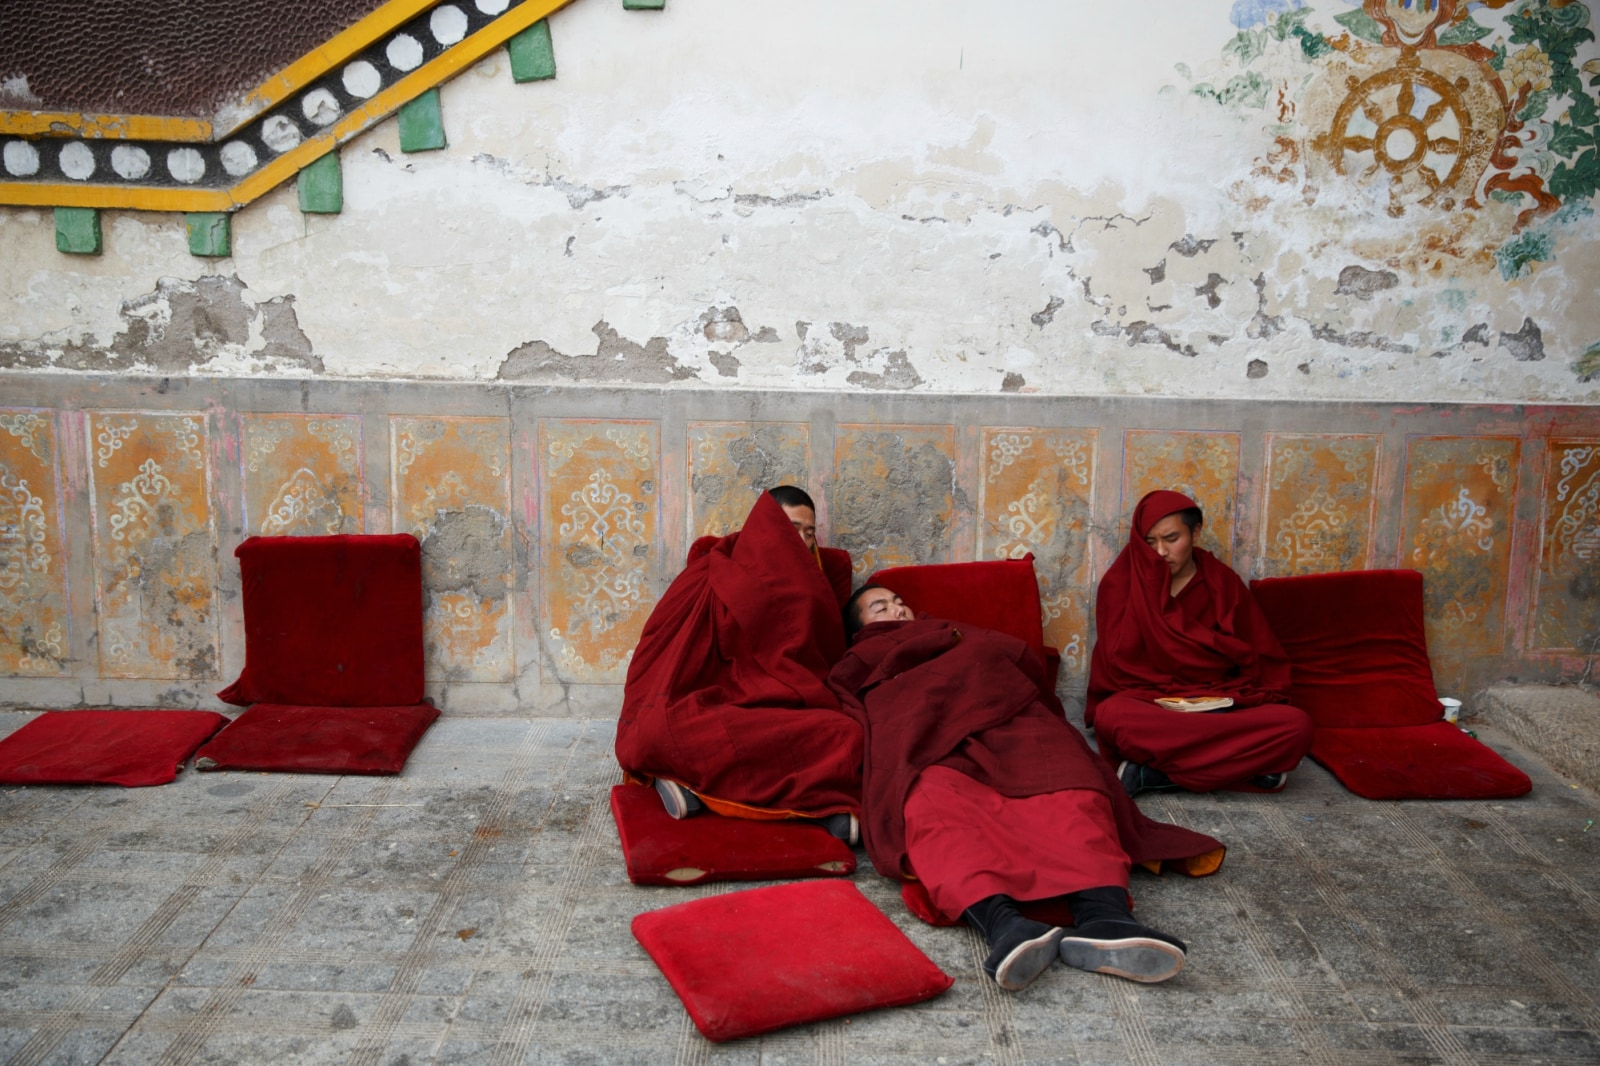 Buddhist monks rest outside a prayer hall between chanting sessions at Rongwo Monastery in the largely ethnic Tibetan town of Rebkong, Qinghai province, China March 9, 2019. REUTERS/Thomas Peter